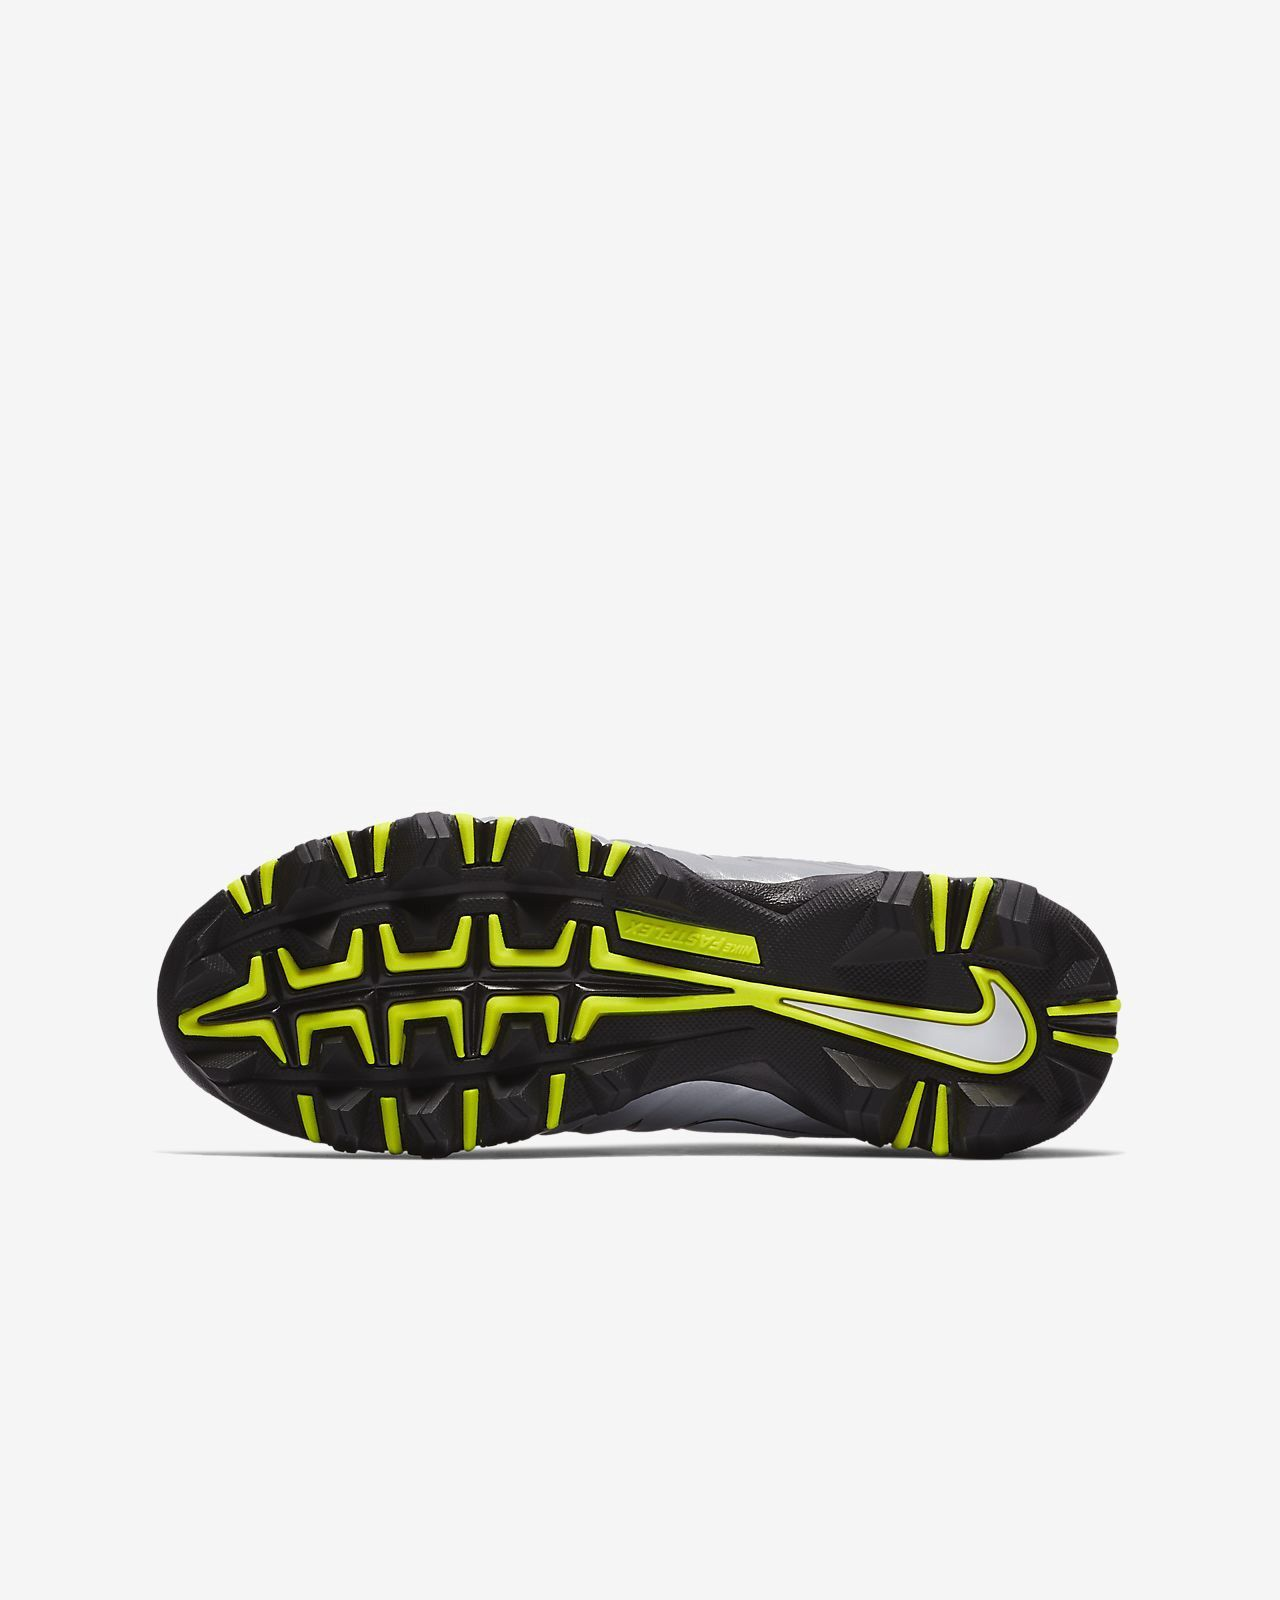 buy online 198bc f86dc nike alpha menace shark cleat Lowest Price On Neon Air Max.